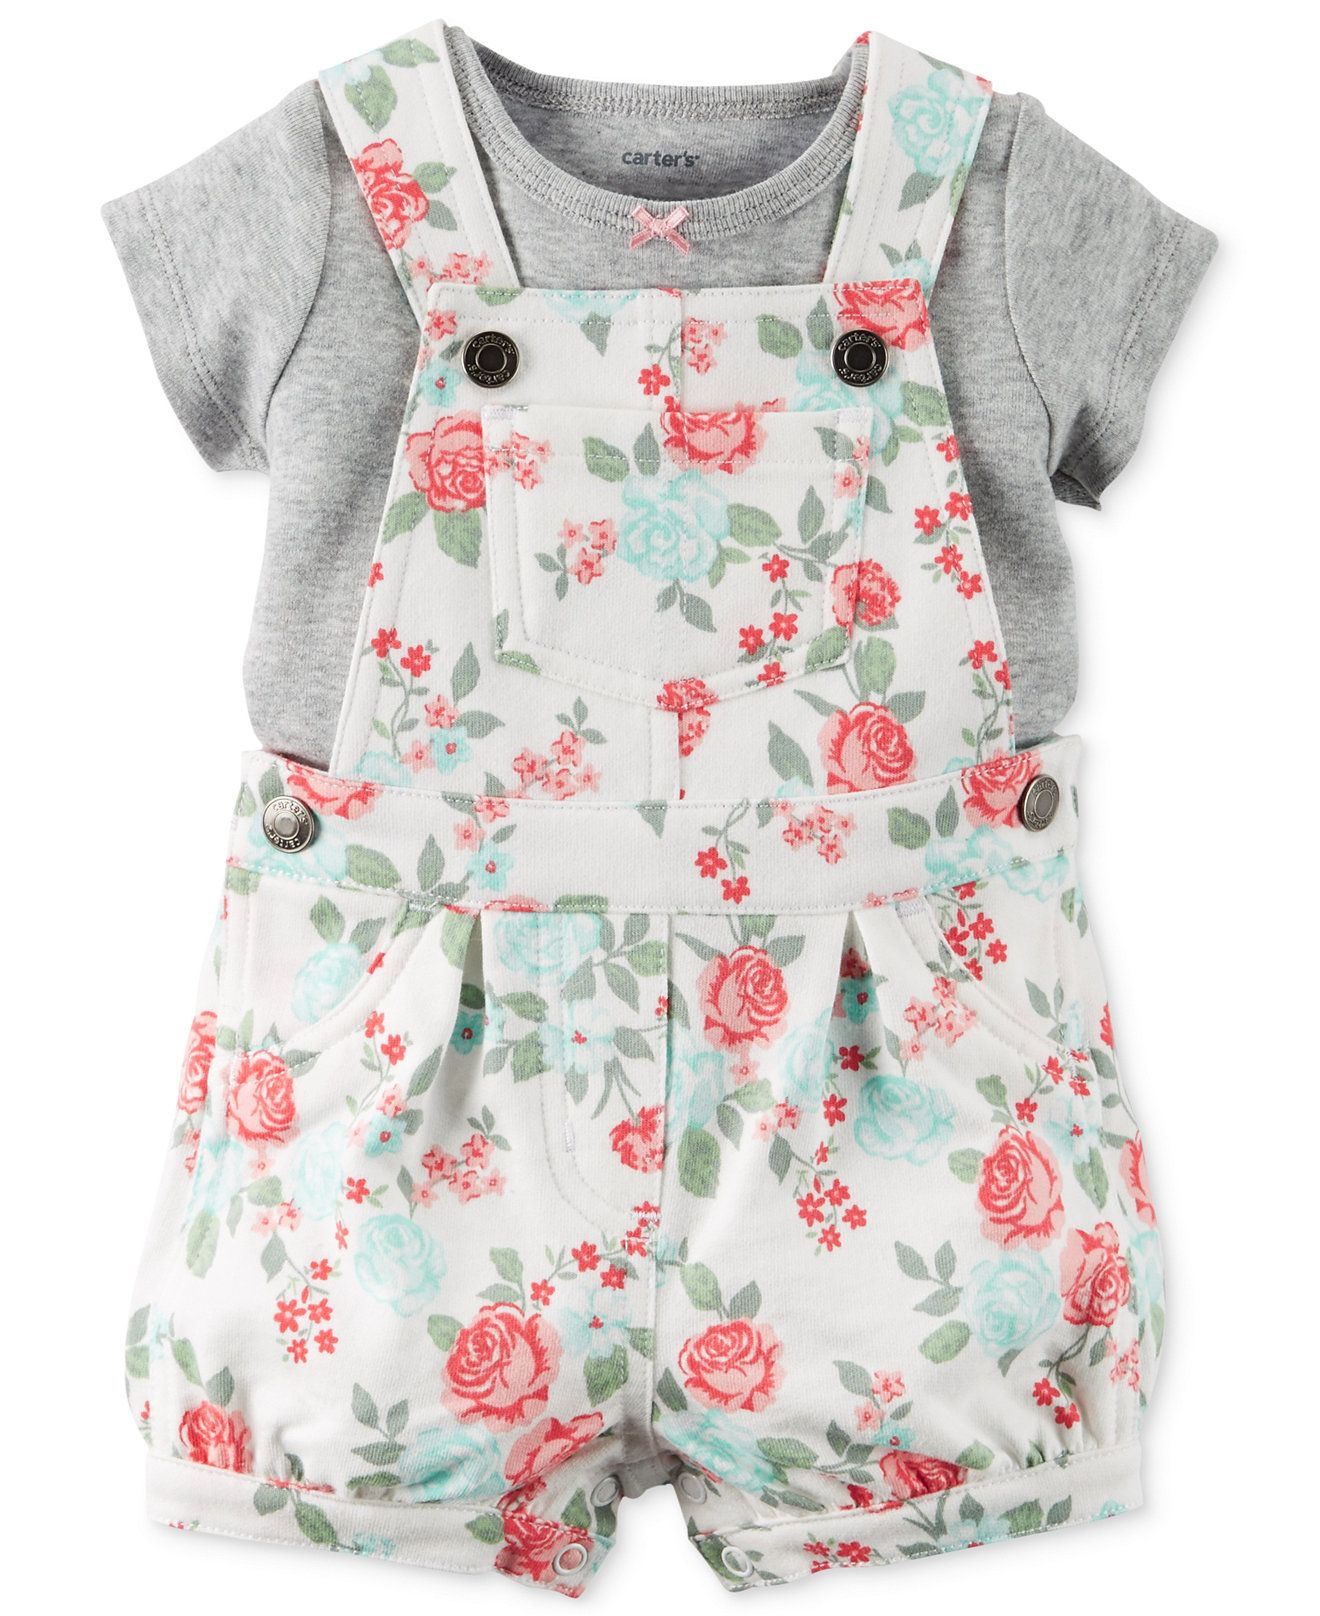 Carter s Baby Girls 2 Piece Gray T Shirt & Rose Print Shortall Set